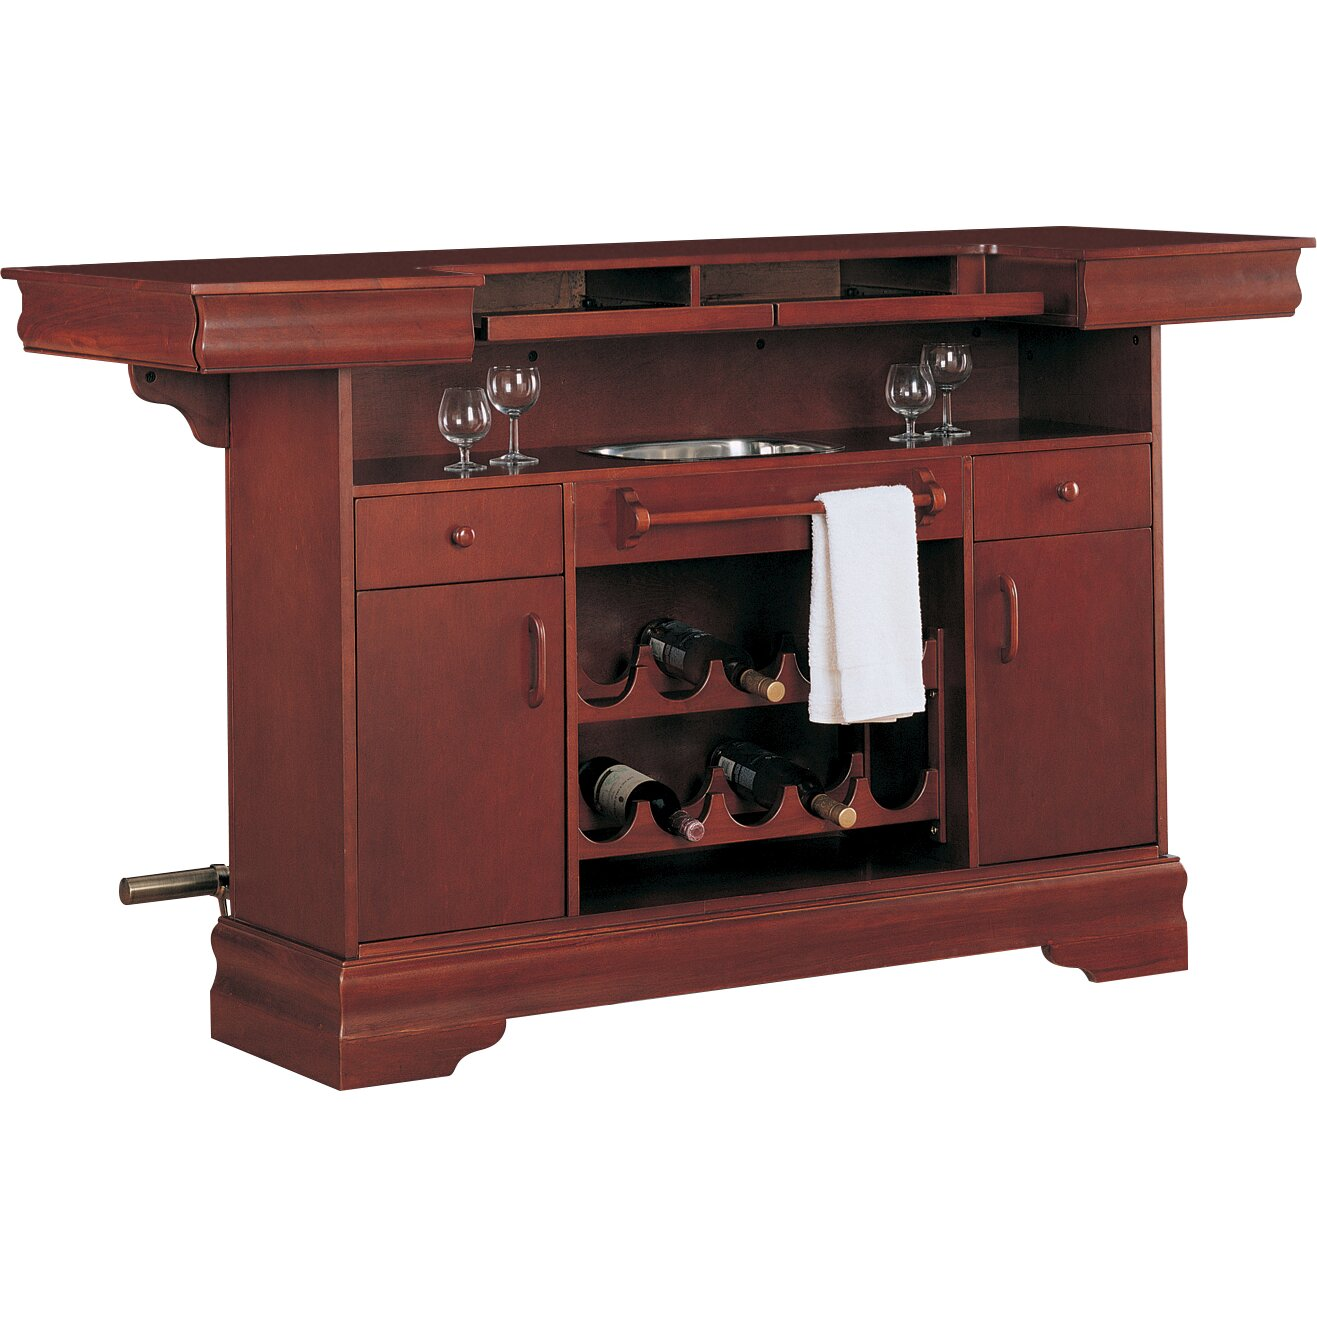 Darby Home Co Shumaker Home Bar Reviews Wayfair: home pub bar furniture